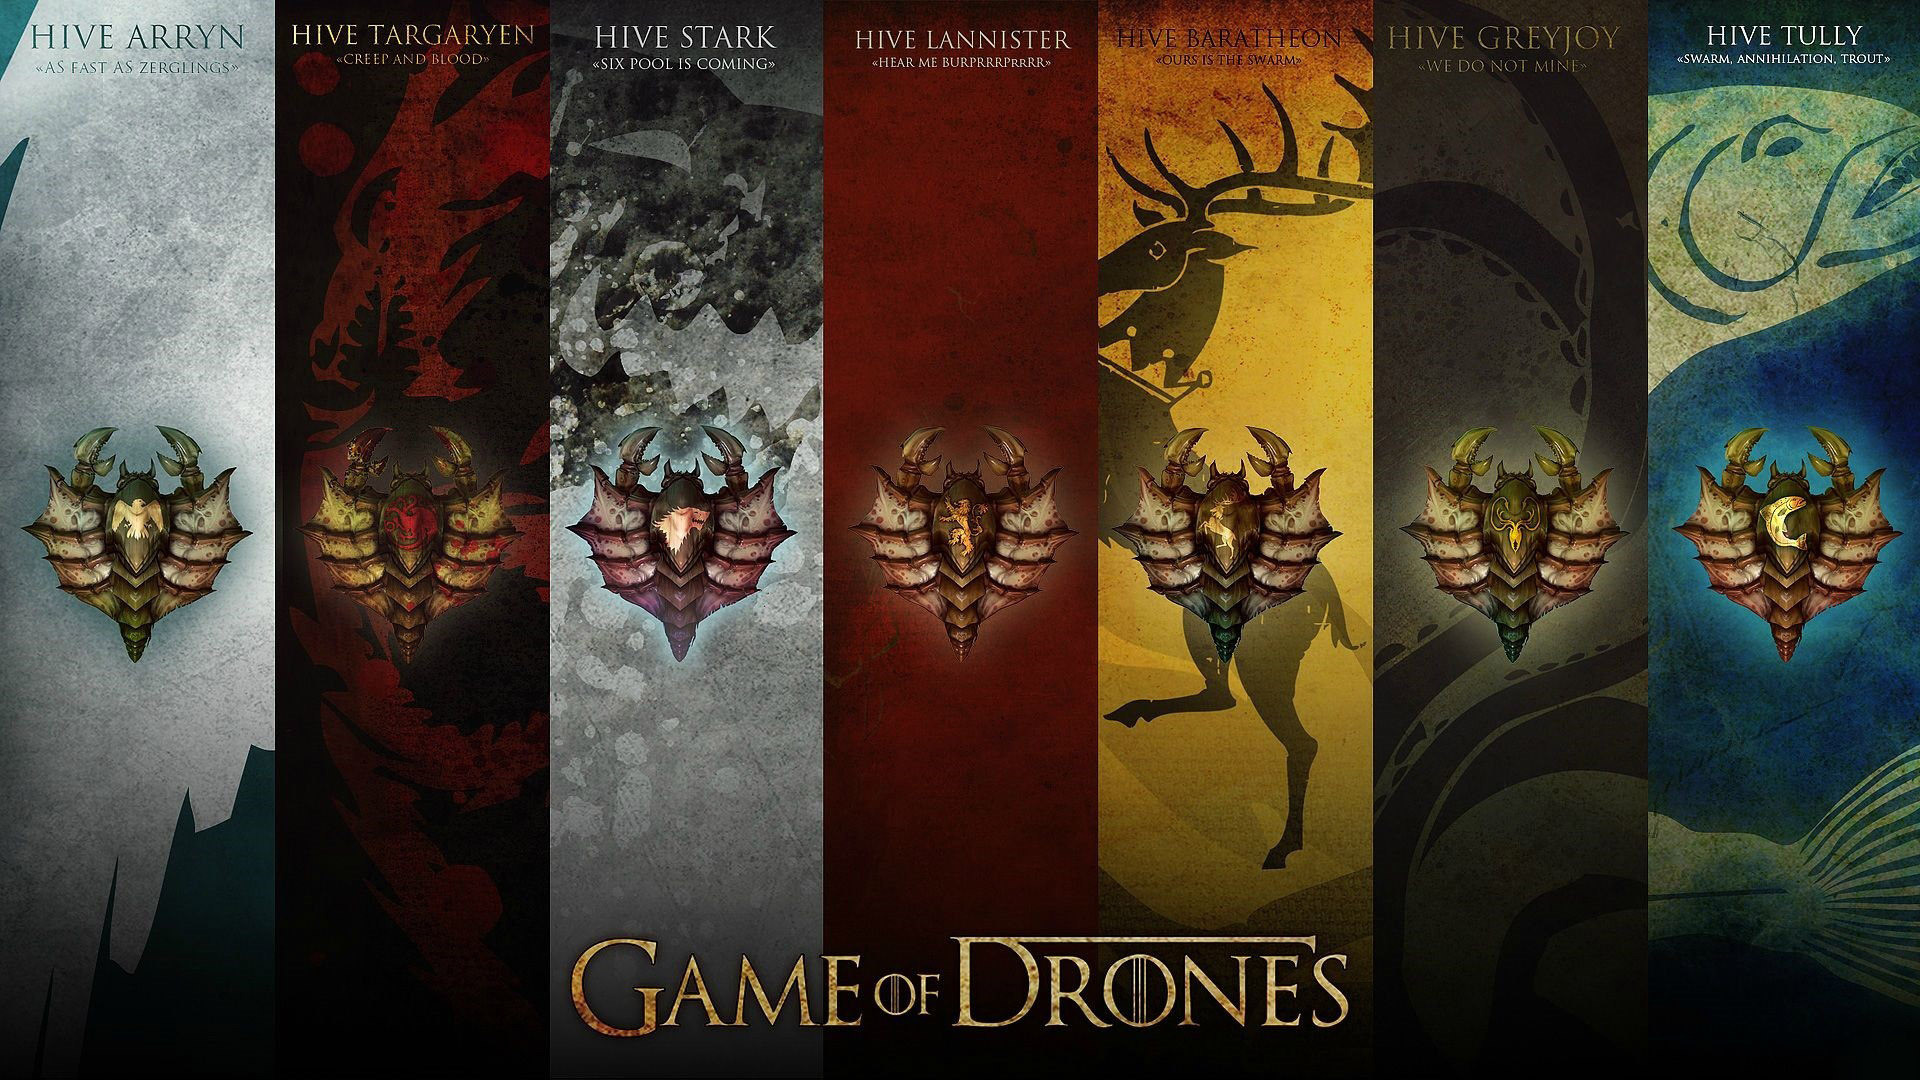 Game of Drones HD Wallpaper | Game Of Thrones Wallpapers